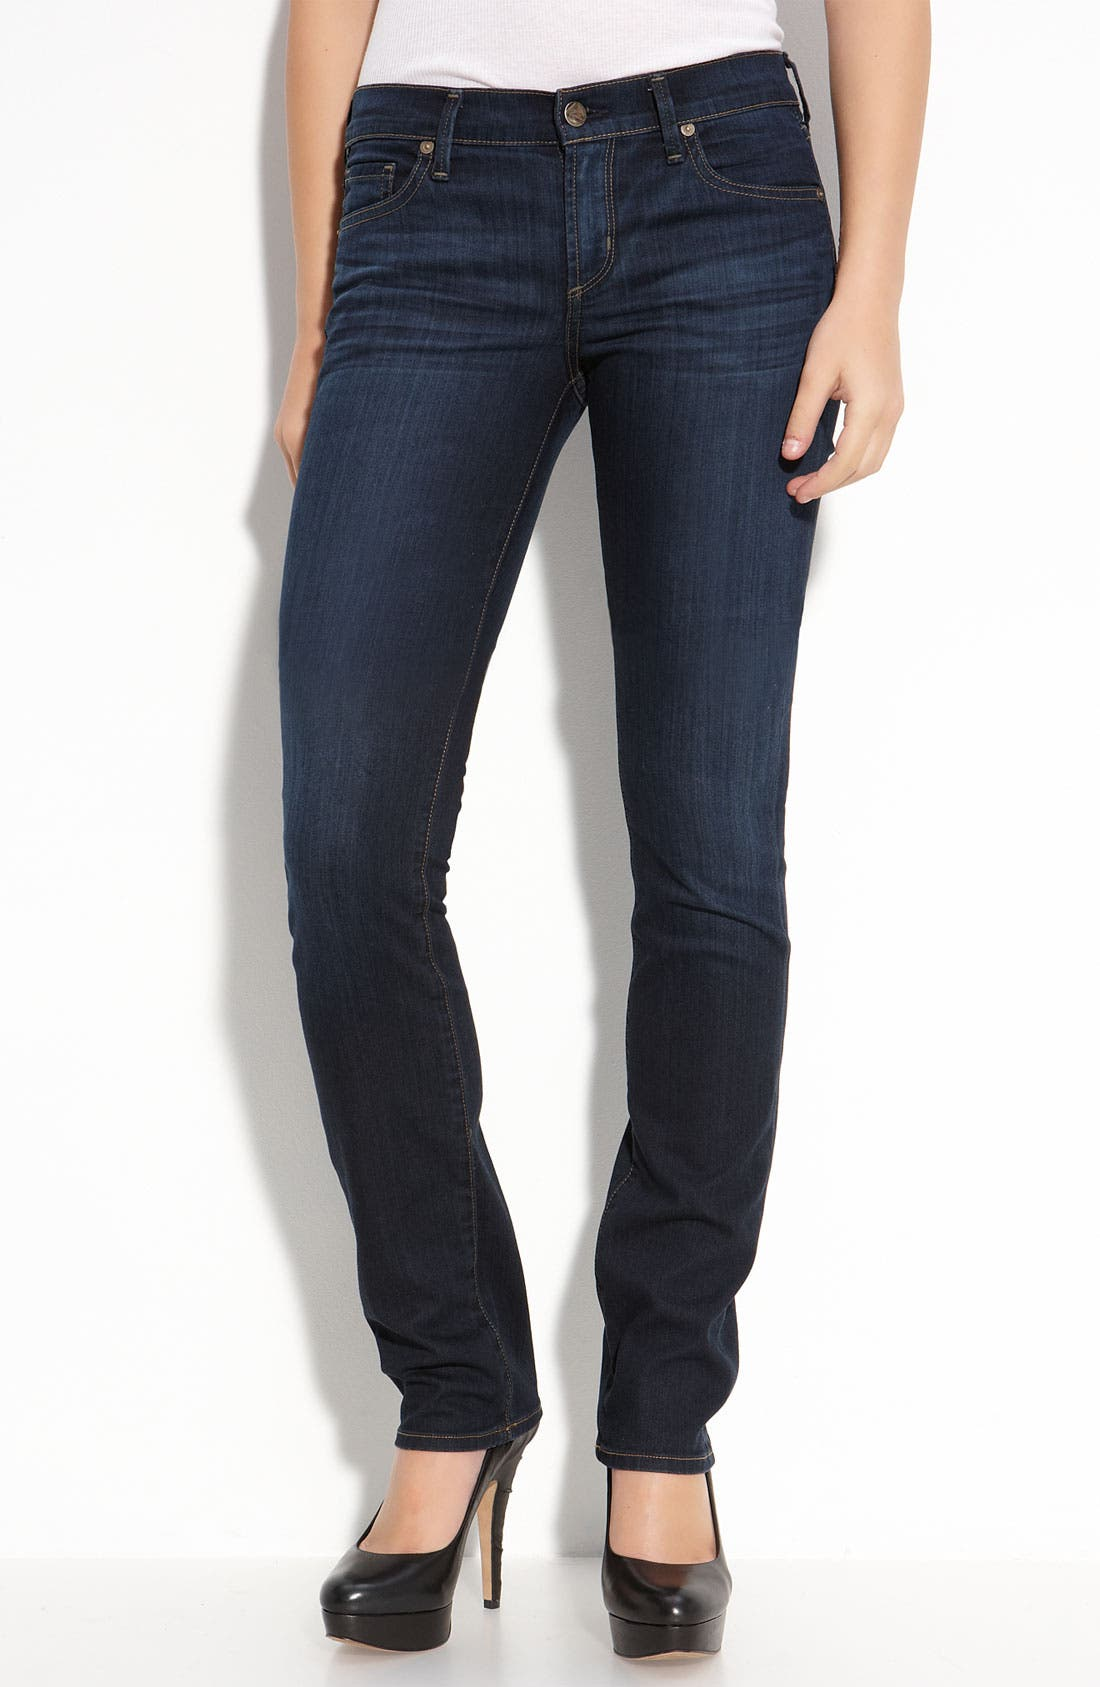 Alternate Image 1 Selected - Citizens of Humanity 'Ava' Straight Leg Stretch Jeans (Faith Dark Wash)